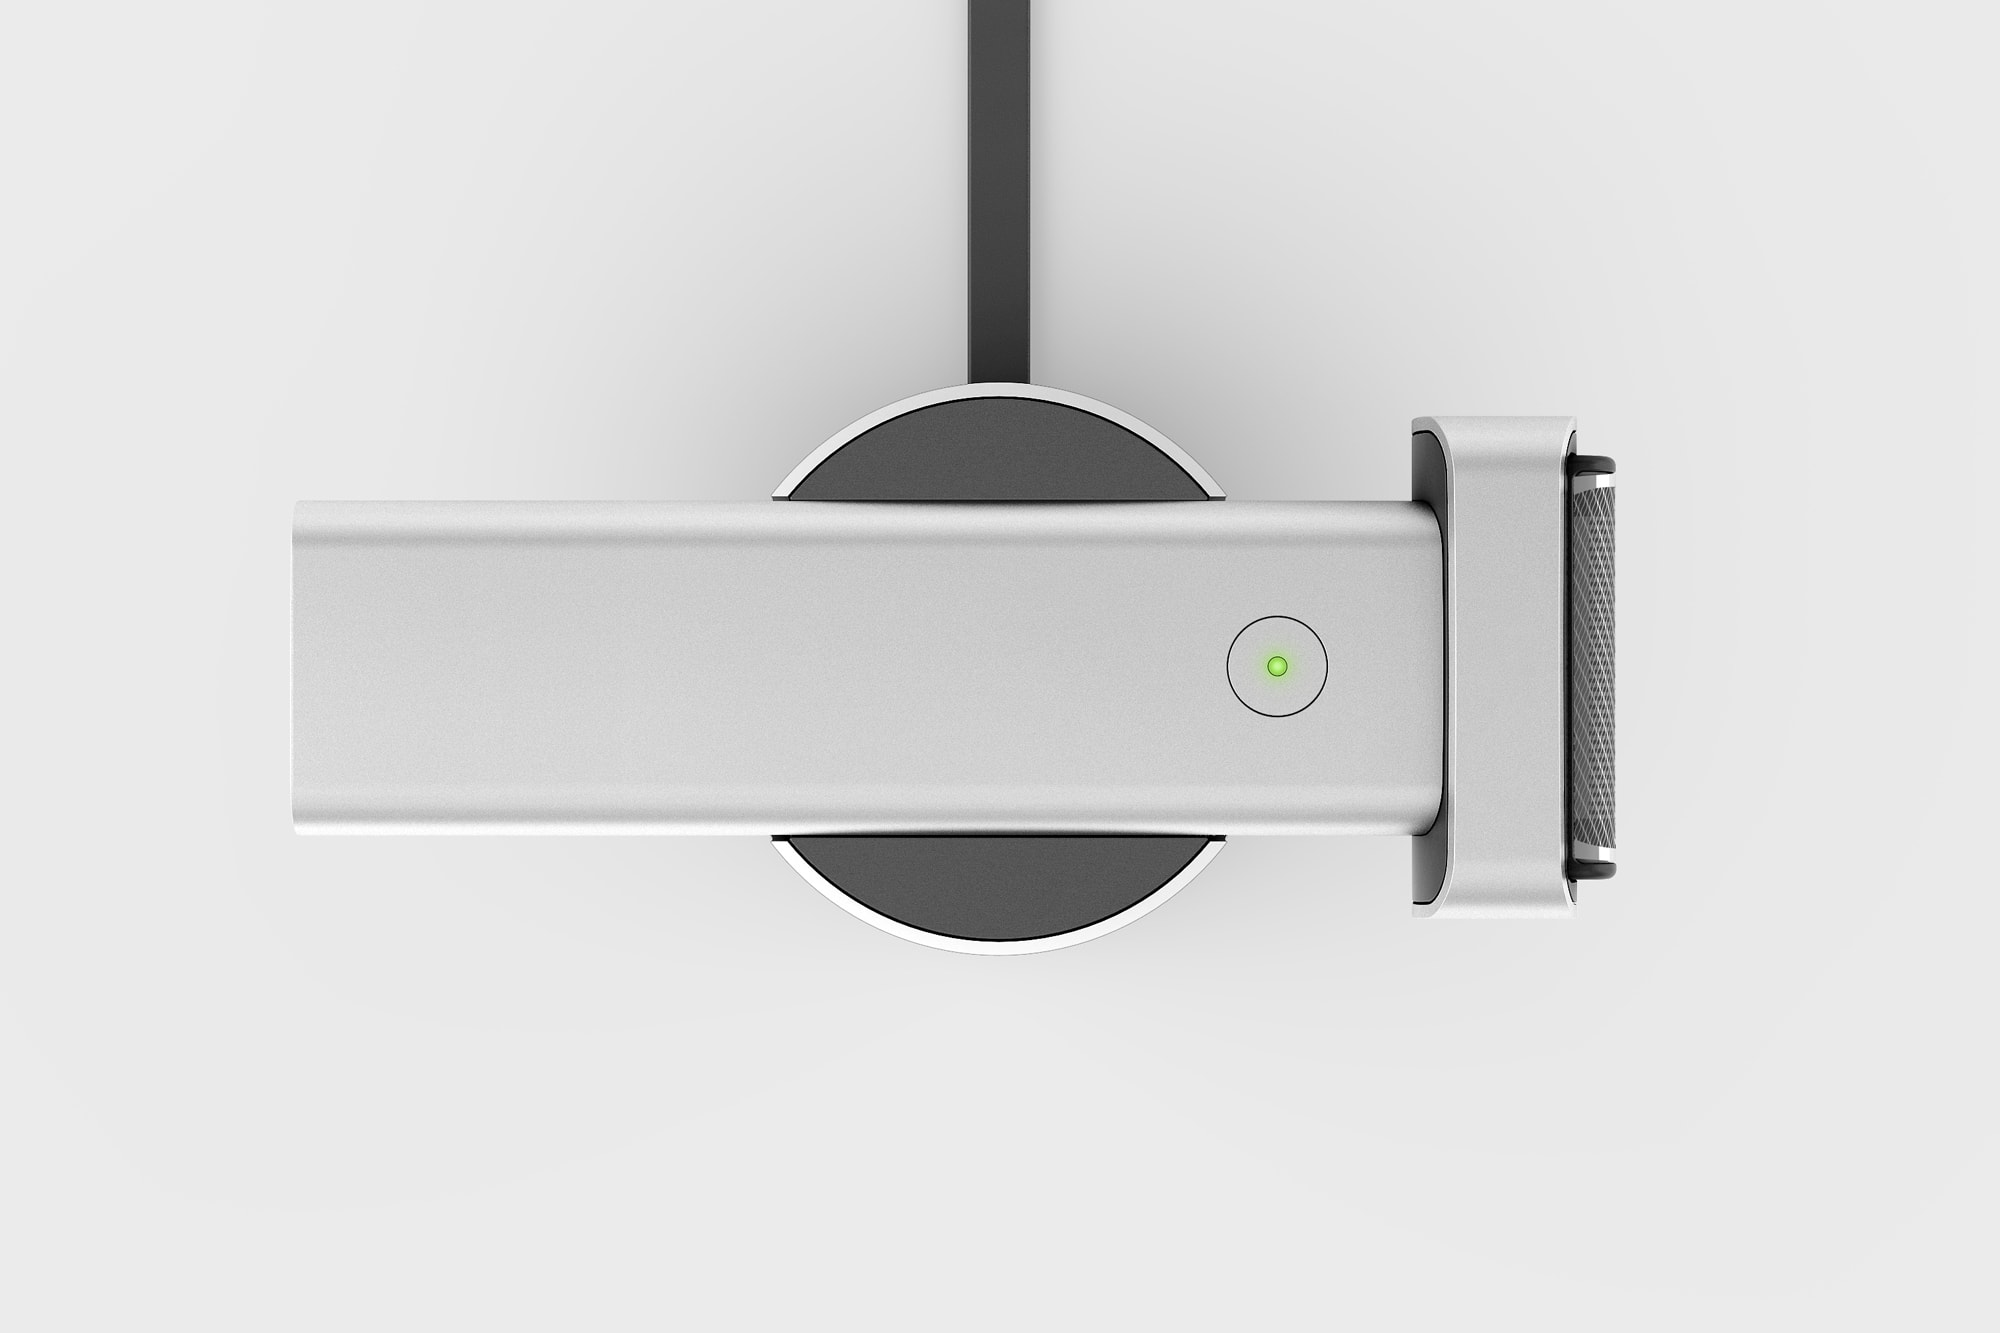 Top view of the Extrusion shaver charging in wireless charging dock, shown in the silver colourway.